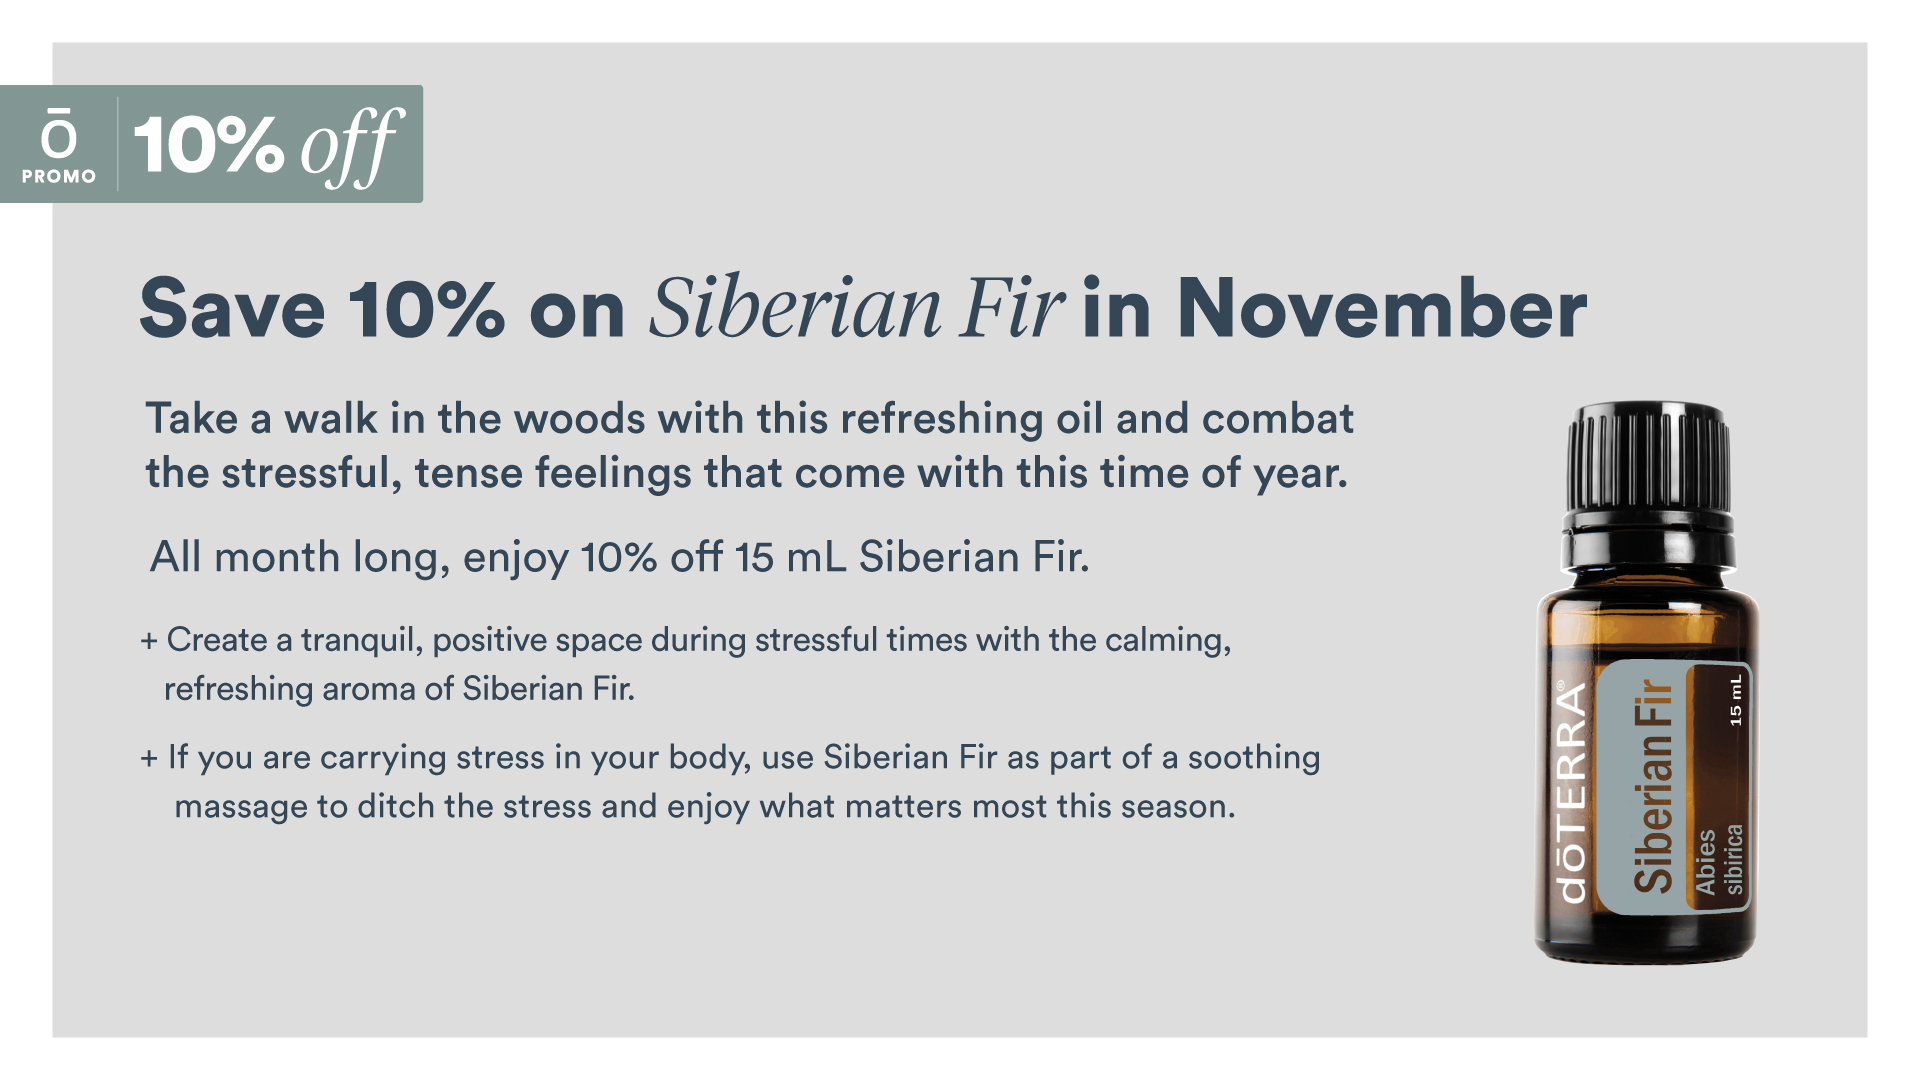 November 2019 Get 10% Off doTERRA Siberian Fir Essential Oil: The Siberian fir tree is a tall, light in color, conifer tree native to Russia and Canada. Siberian Fir essential oil has a refreshing, woody scent that is known for its calming and relaxing properties. Siberian Fir has a unique chemical composition that is predominately bornyl acetate, which provides a majority of the easing benefits of this essential oil. Siberian Fir can be very soothing to the skin, making it an ideal essential oil to add to a comforting massage. When diffused, Siberian Fir can help promote feelings of easy breathing, while calming the emotions and providing a grounding effect.